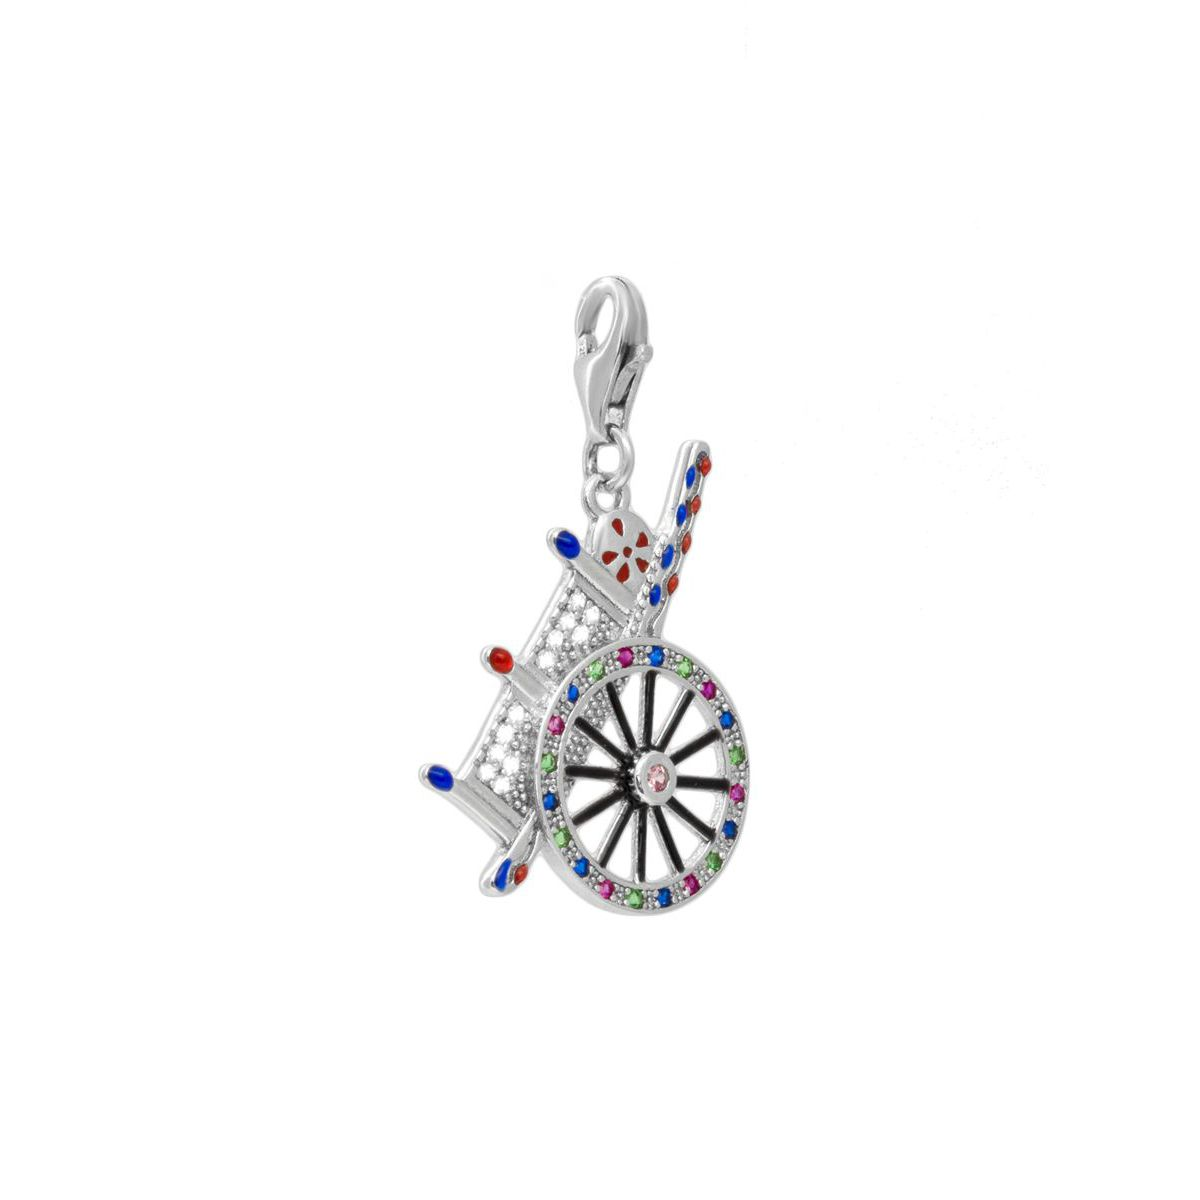 HANDCART CHARM Silver M'AMI SICILY JEWELS